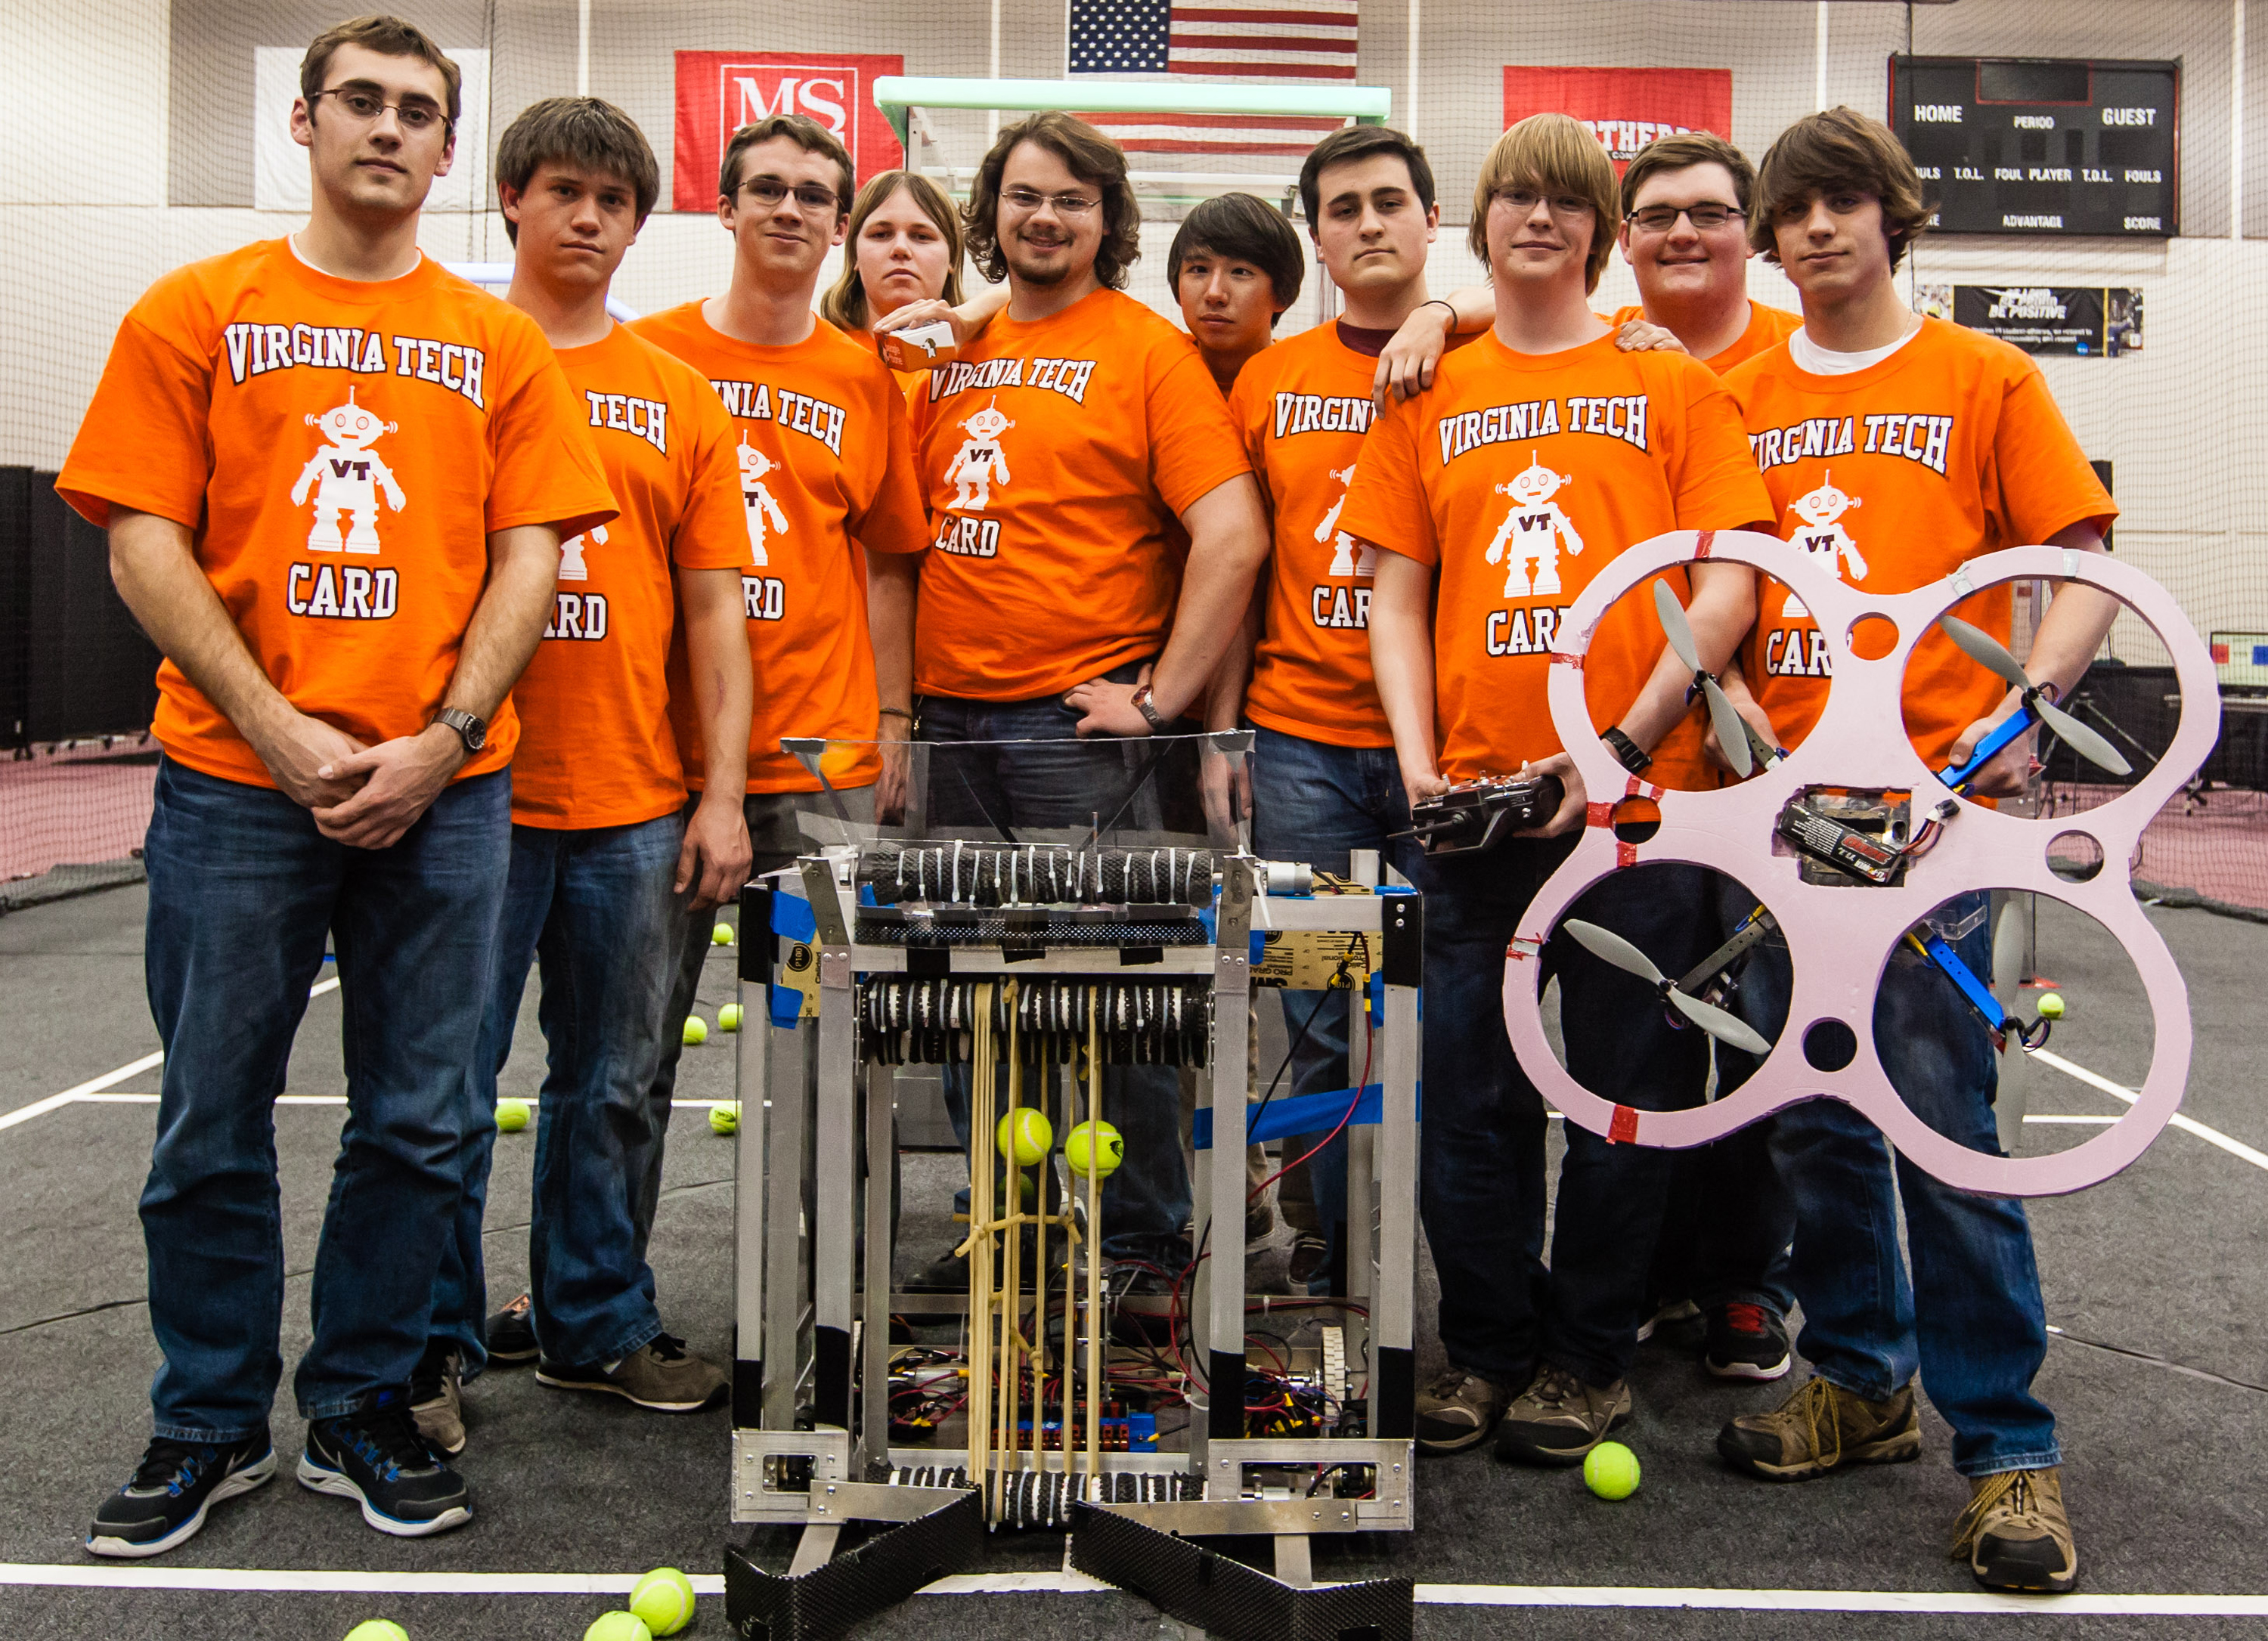 Collegiate Aerial Robotics Demonstration team